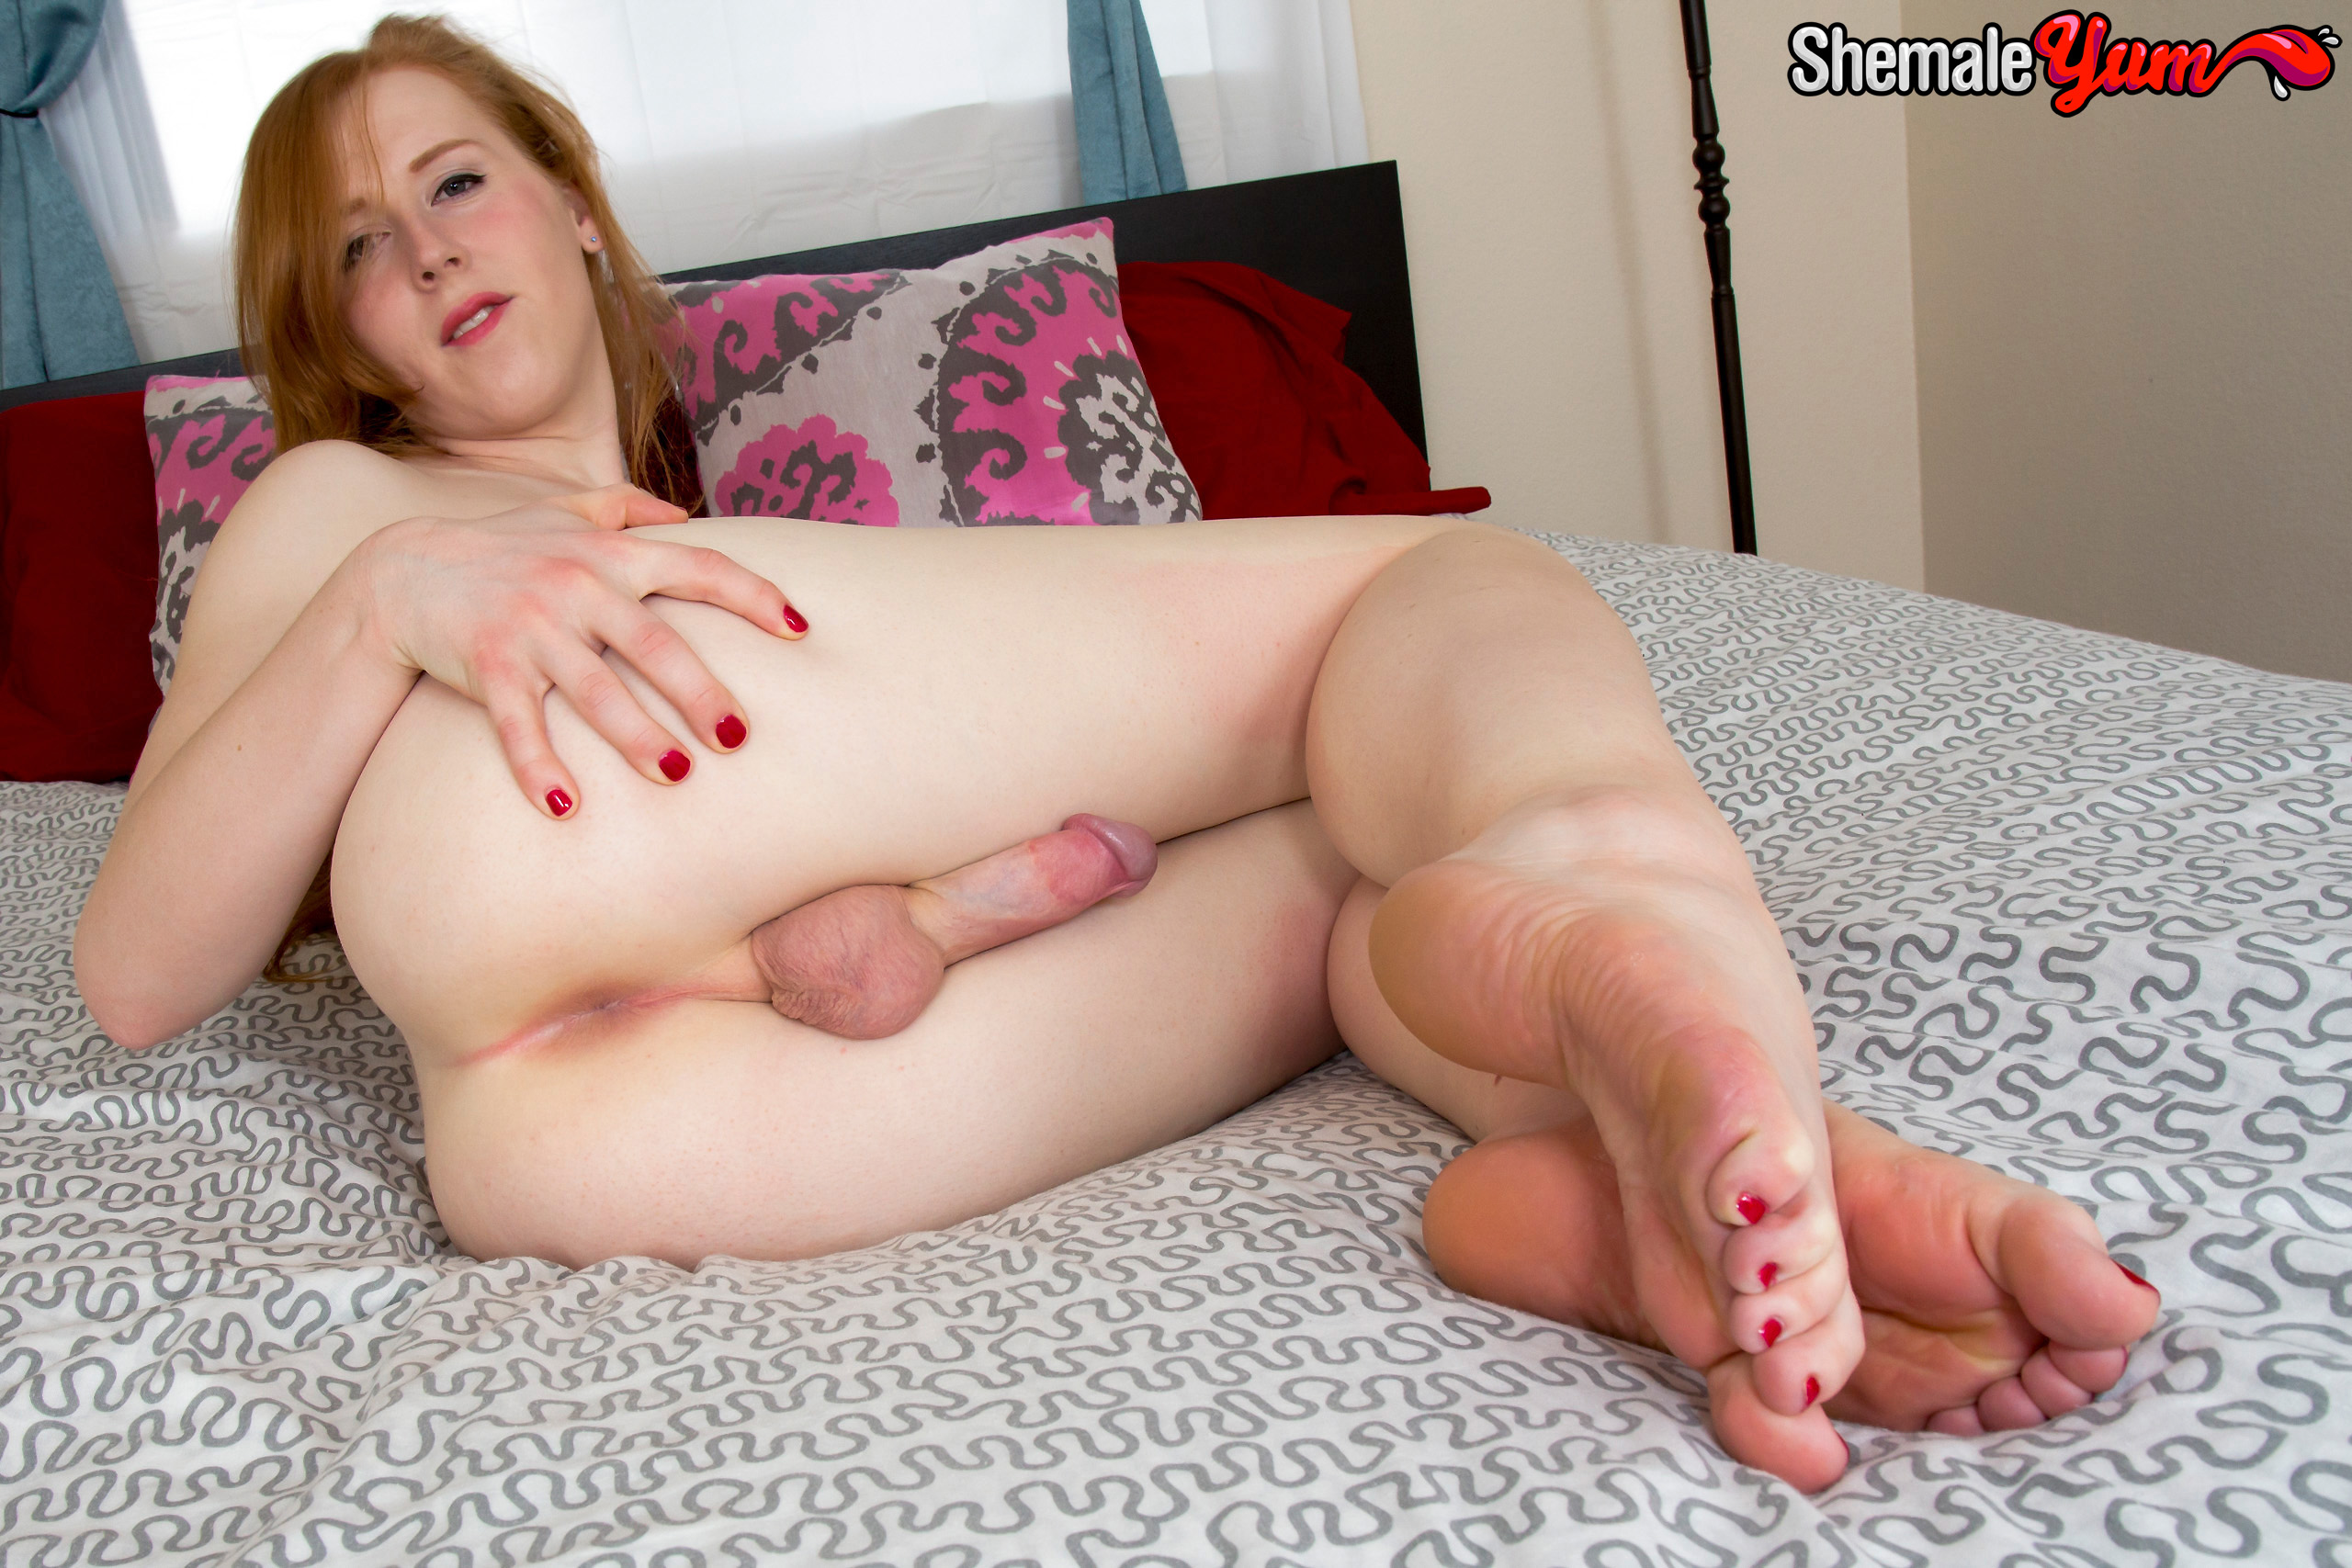 Transsexuals, shemale, ladyboy